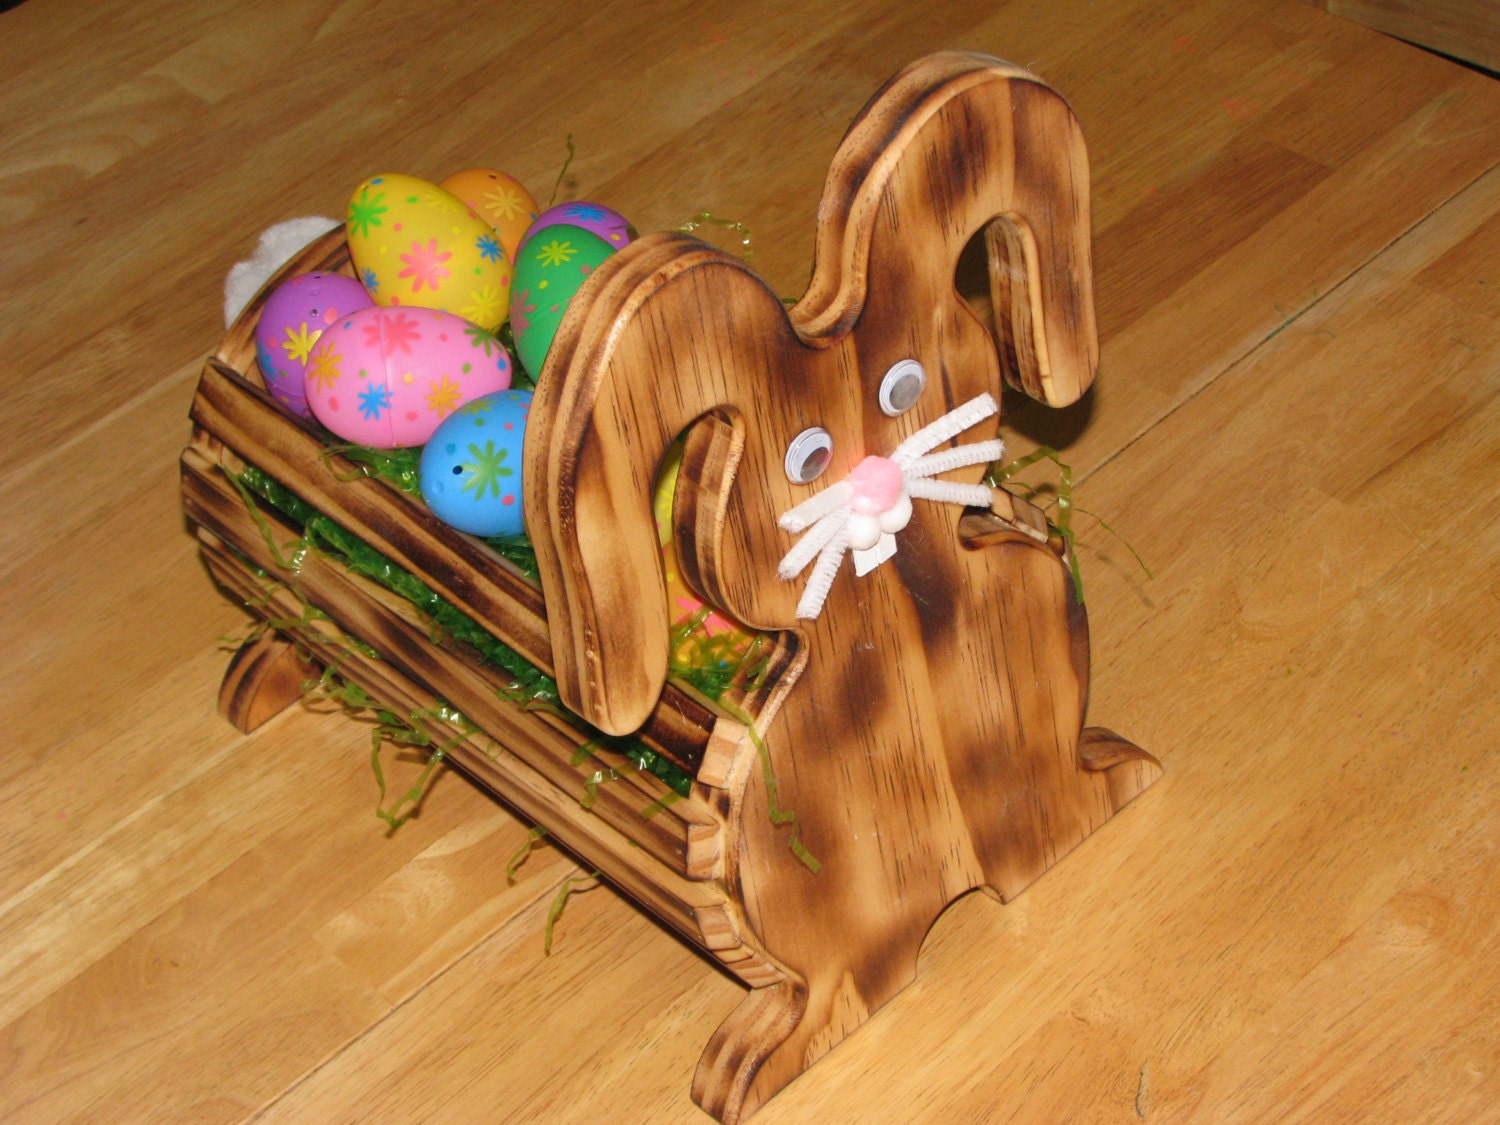 Easter Bunny Wooden Basket : ilfullxfull4287266449rj4 from www.etsy.com size 1500 x 1125 jpeg 394kB